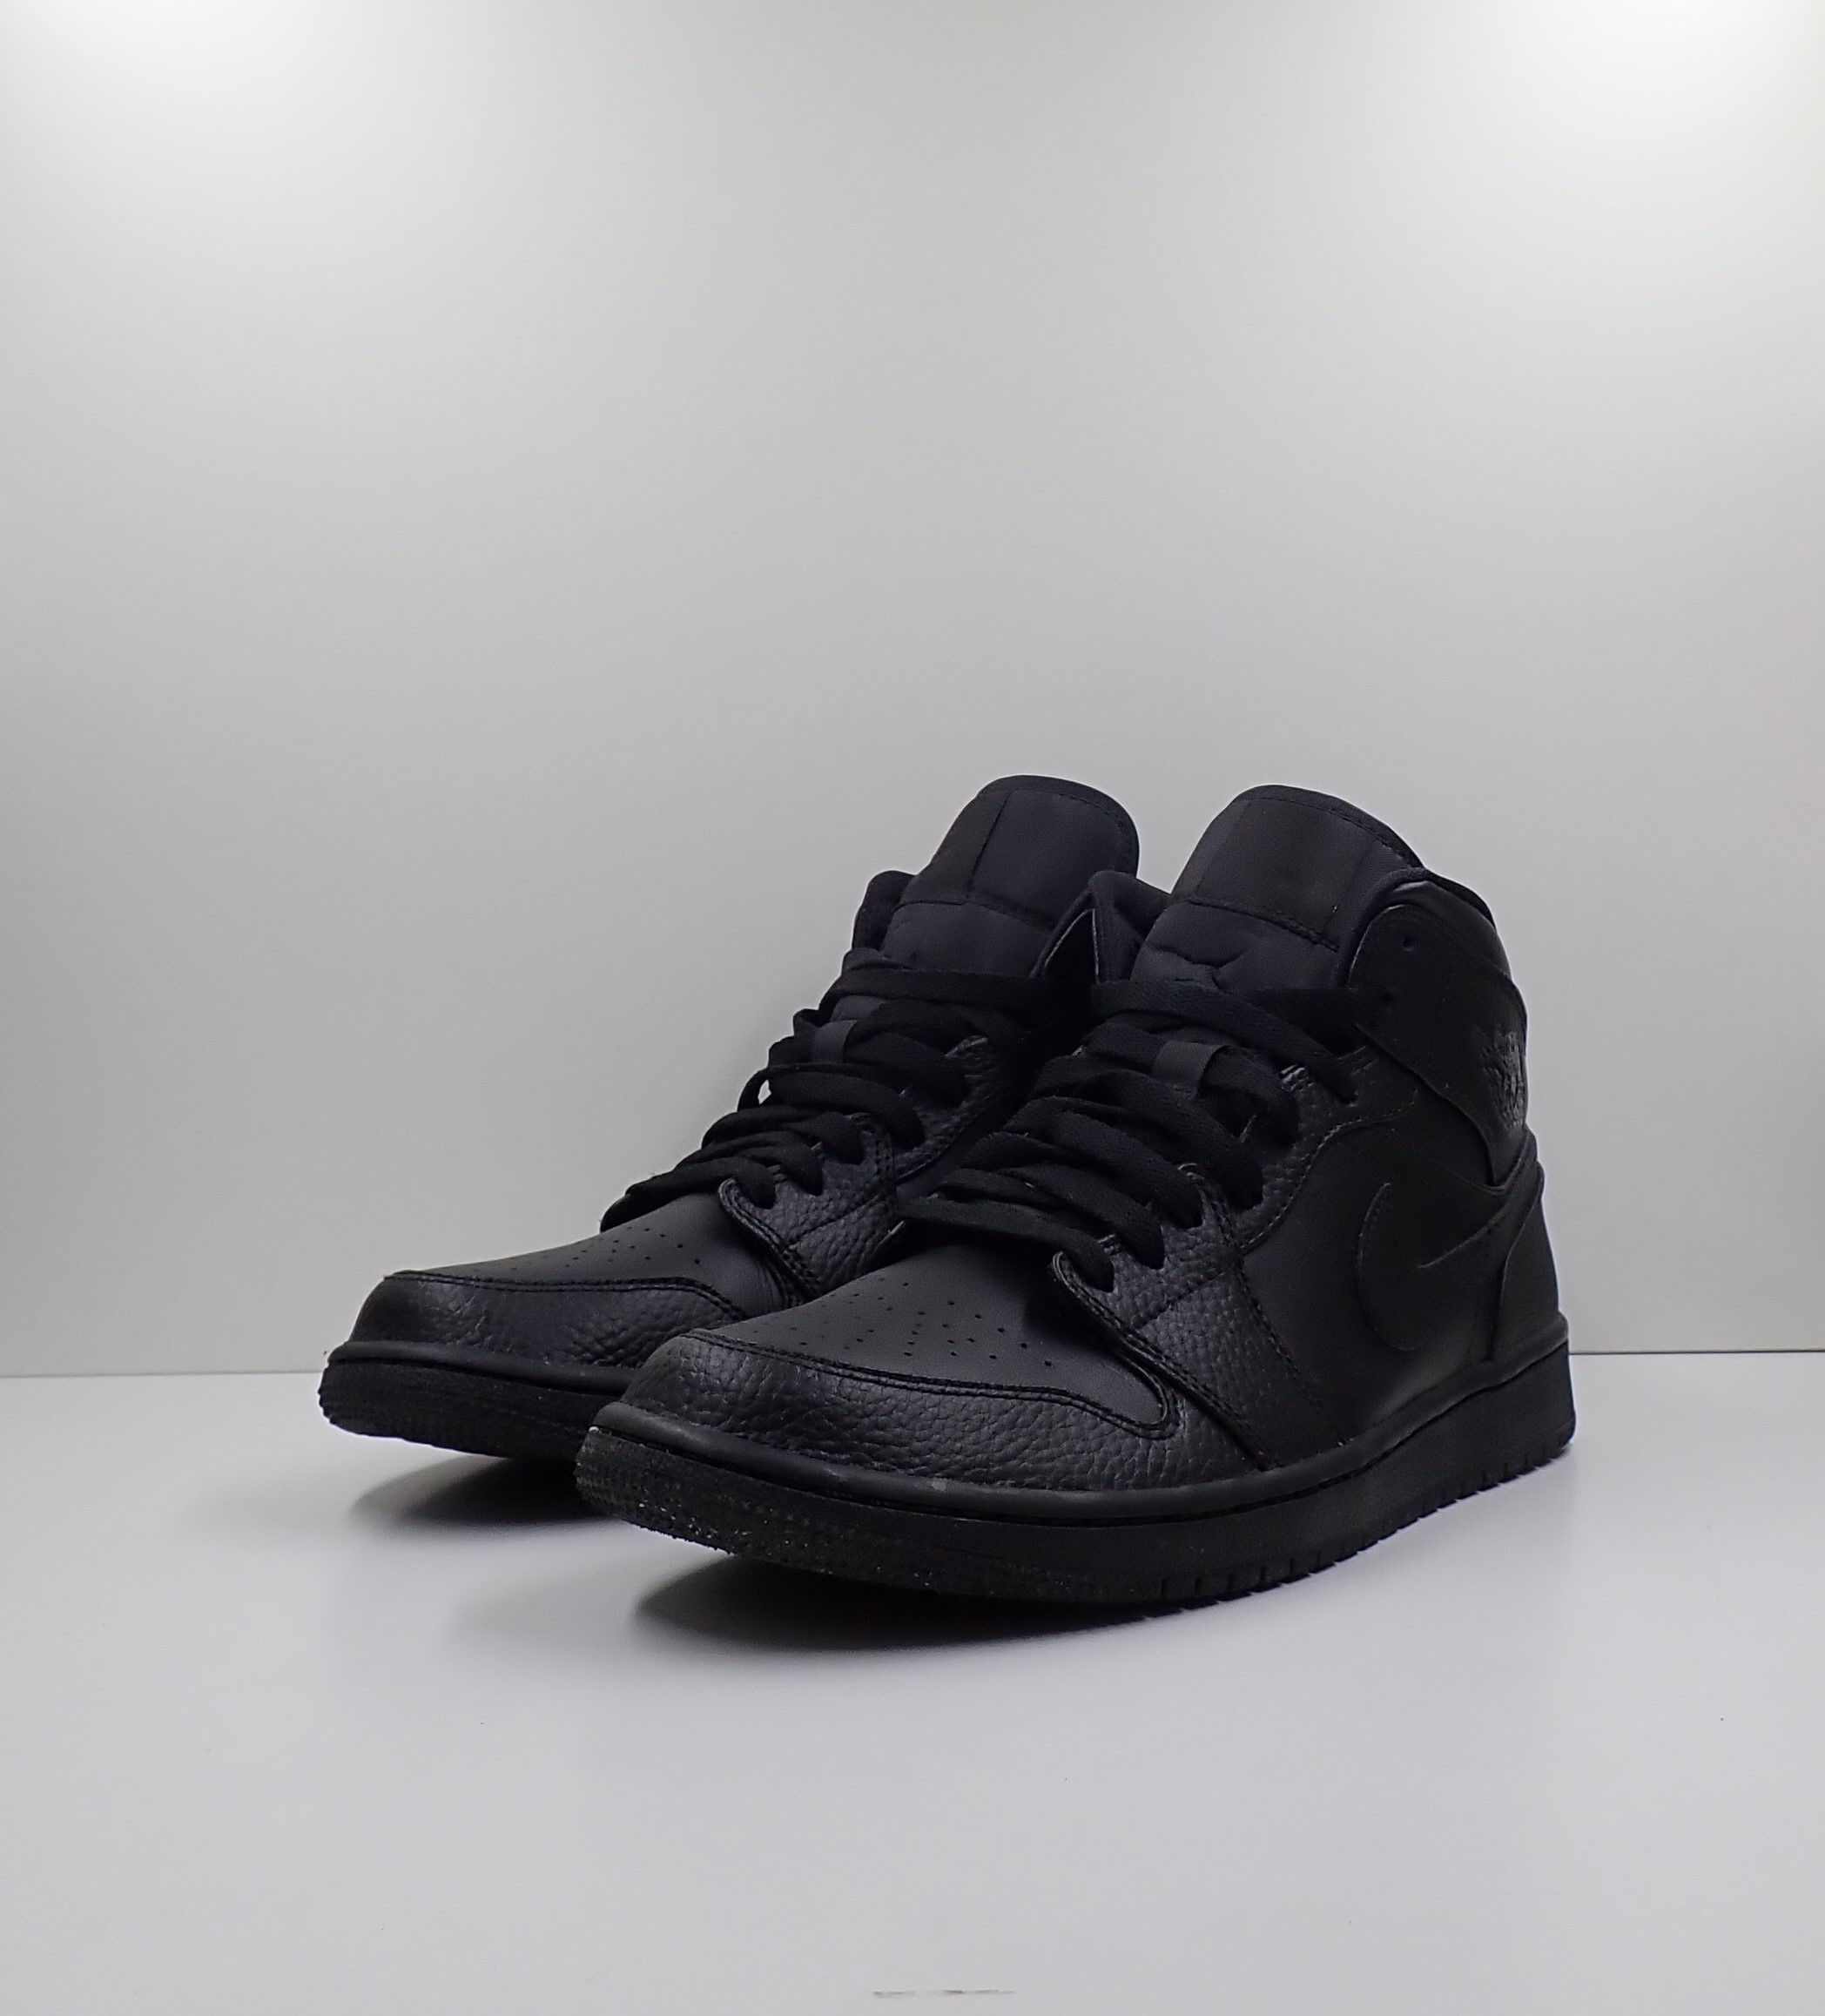 Jordan 1 Mid Triple Black (2020)